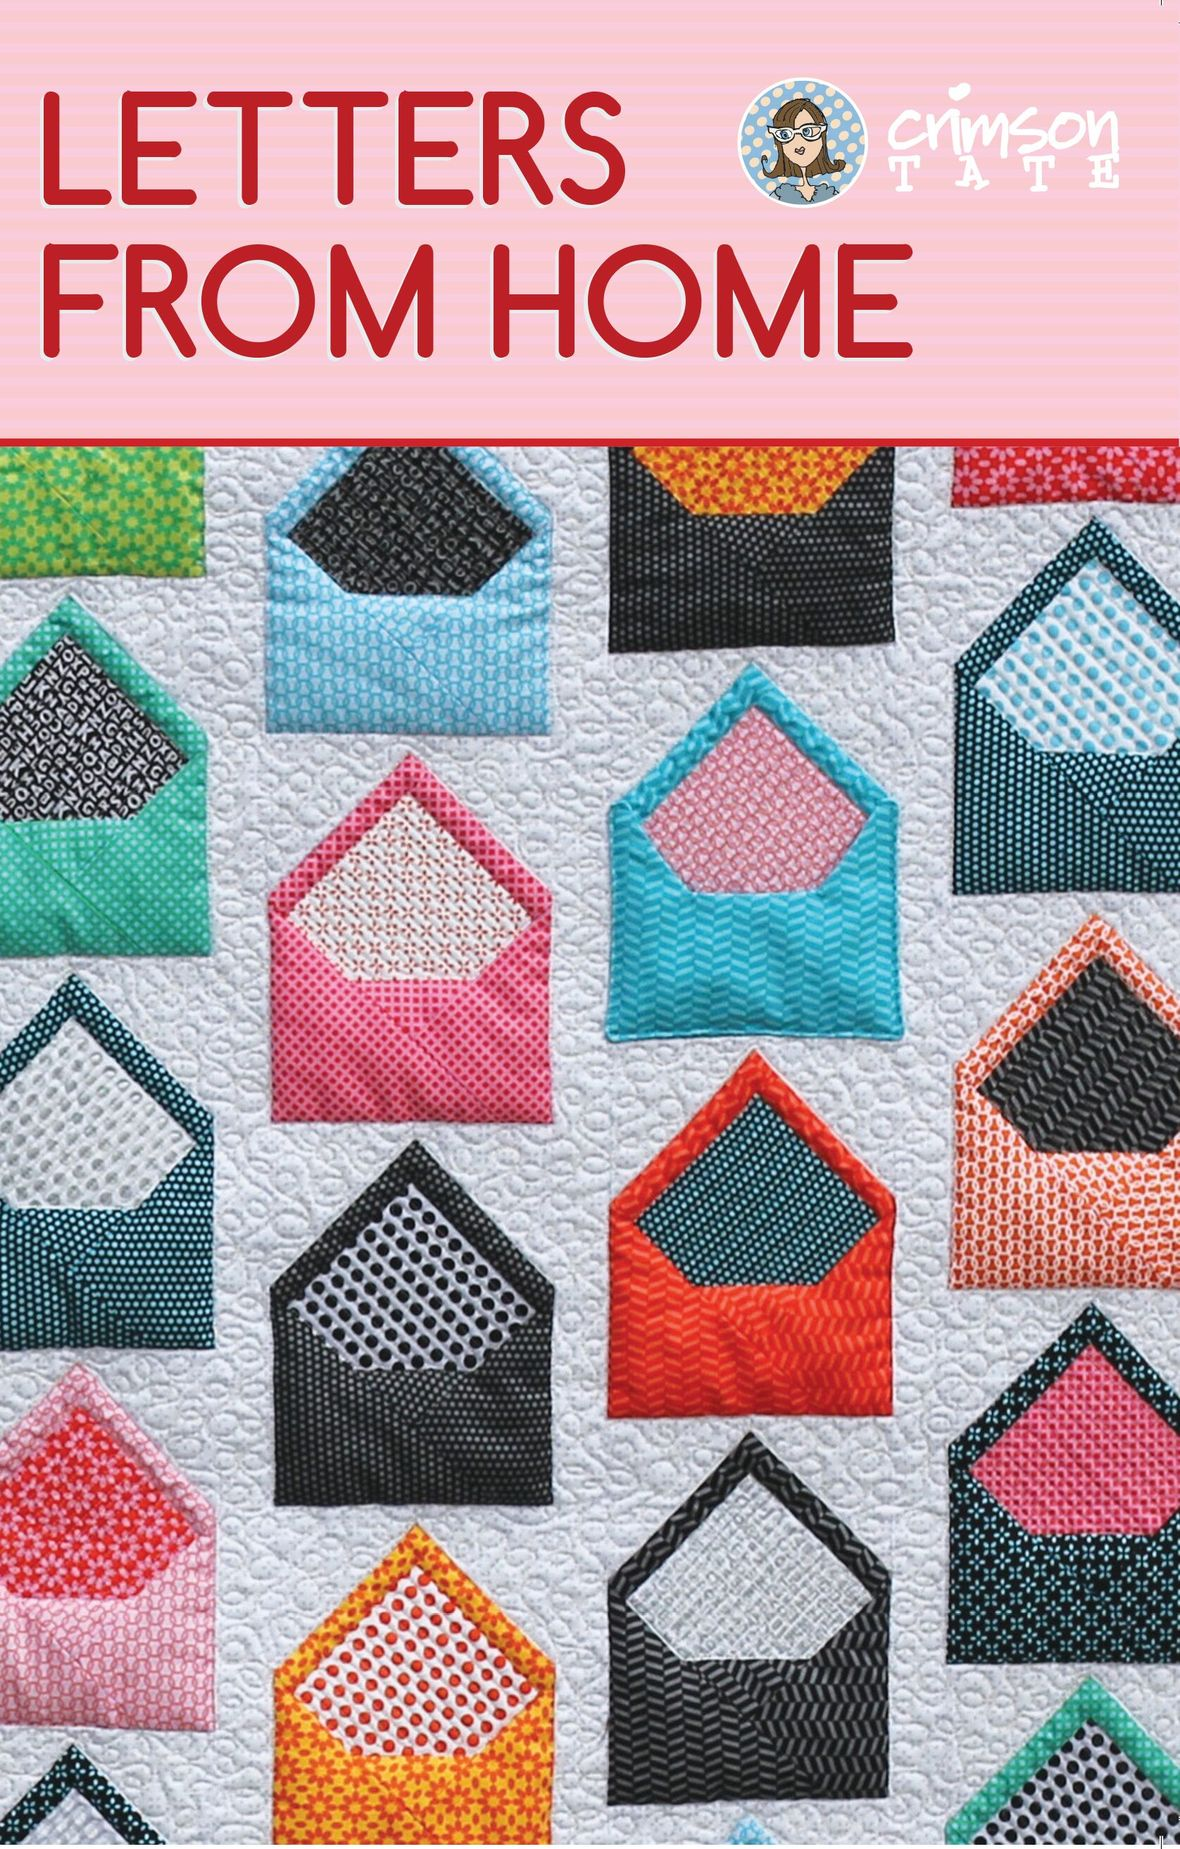 heather givans letters from home quilt ct sewing pattern